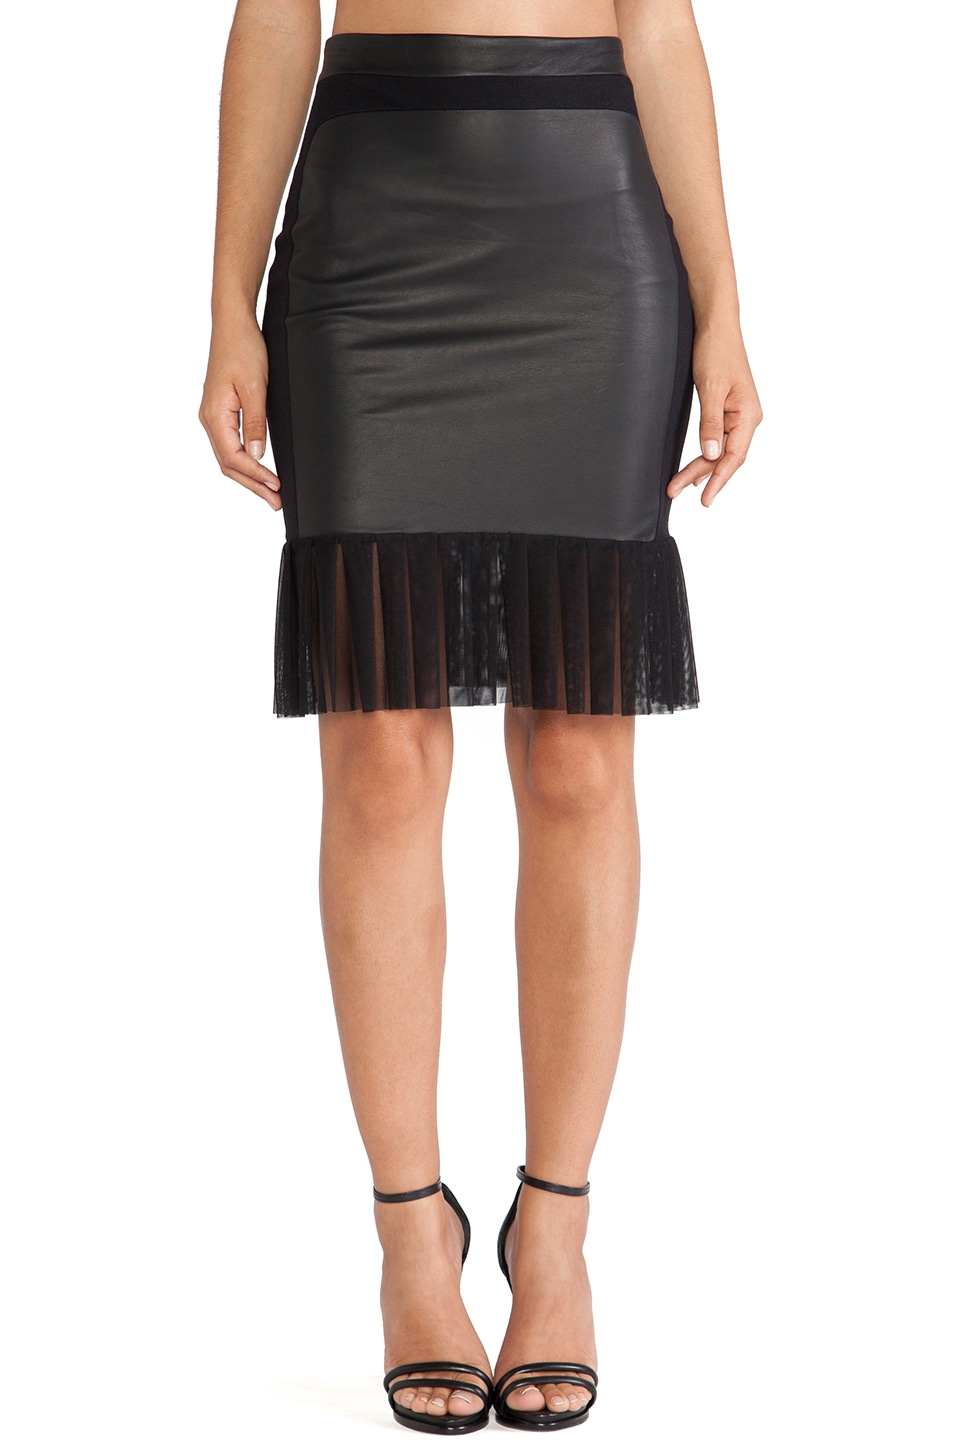 LaPina by David Helwani LaPina Simone Skirt in Black & Black Leather